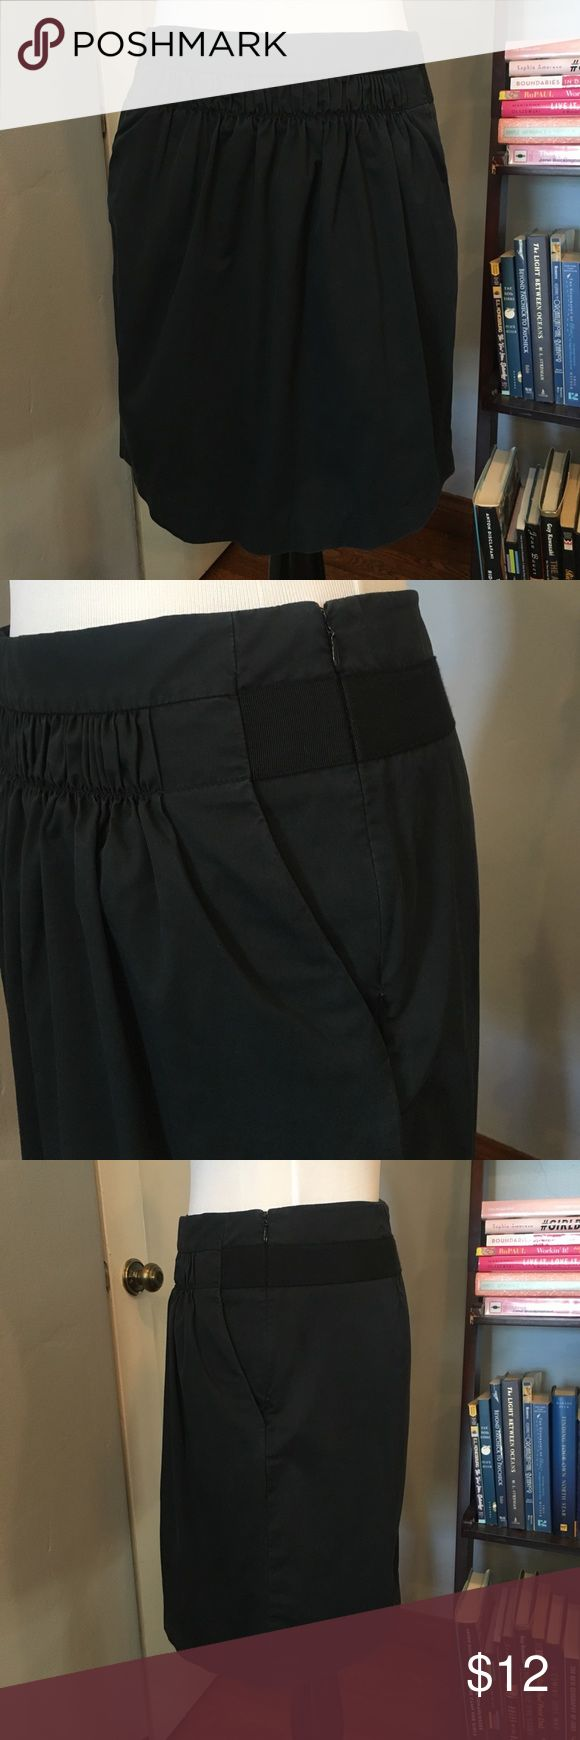 Banana Republic Black Stretch Skirt with Pockets This is such an adorable skirt! It's pedal shaped, meaning it's a looser version of a pencil skirt. Pockets in the front with a fantastic ruching detail across the top. Happy to answer any questions! Banana Republic Skirts